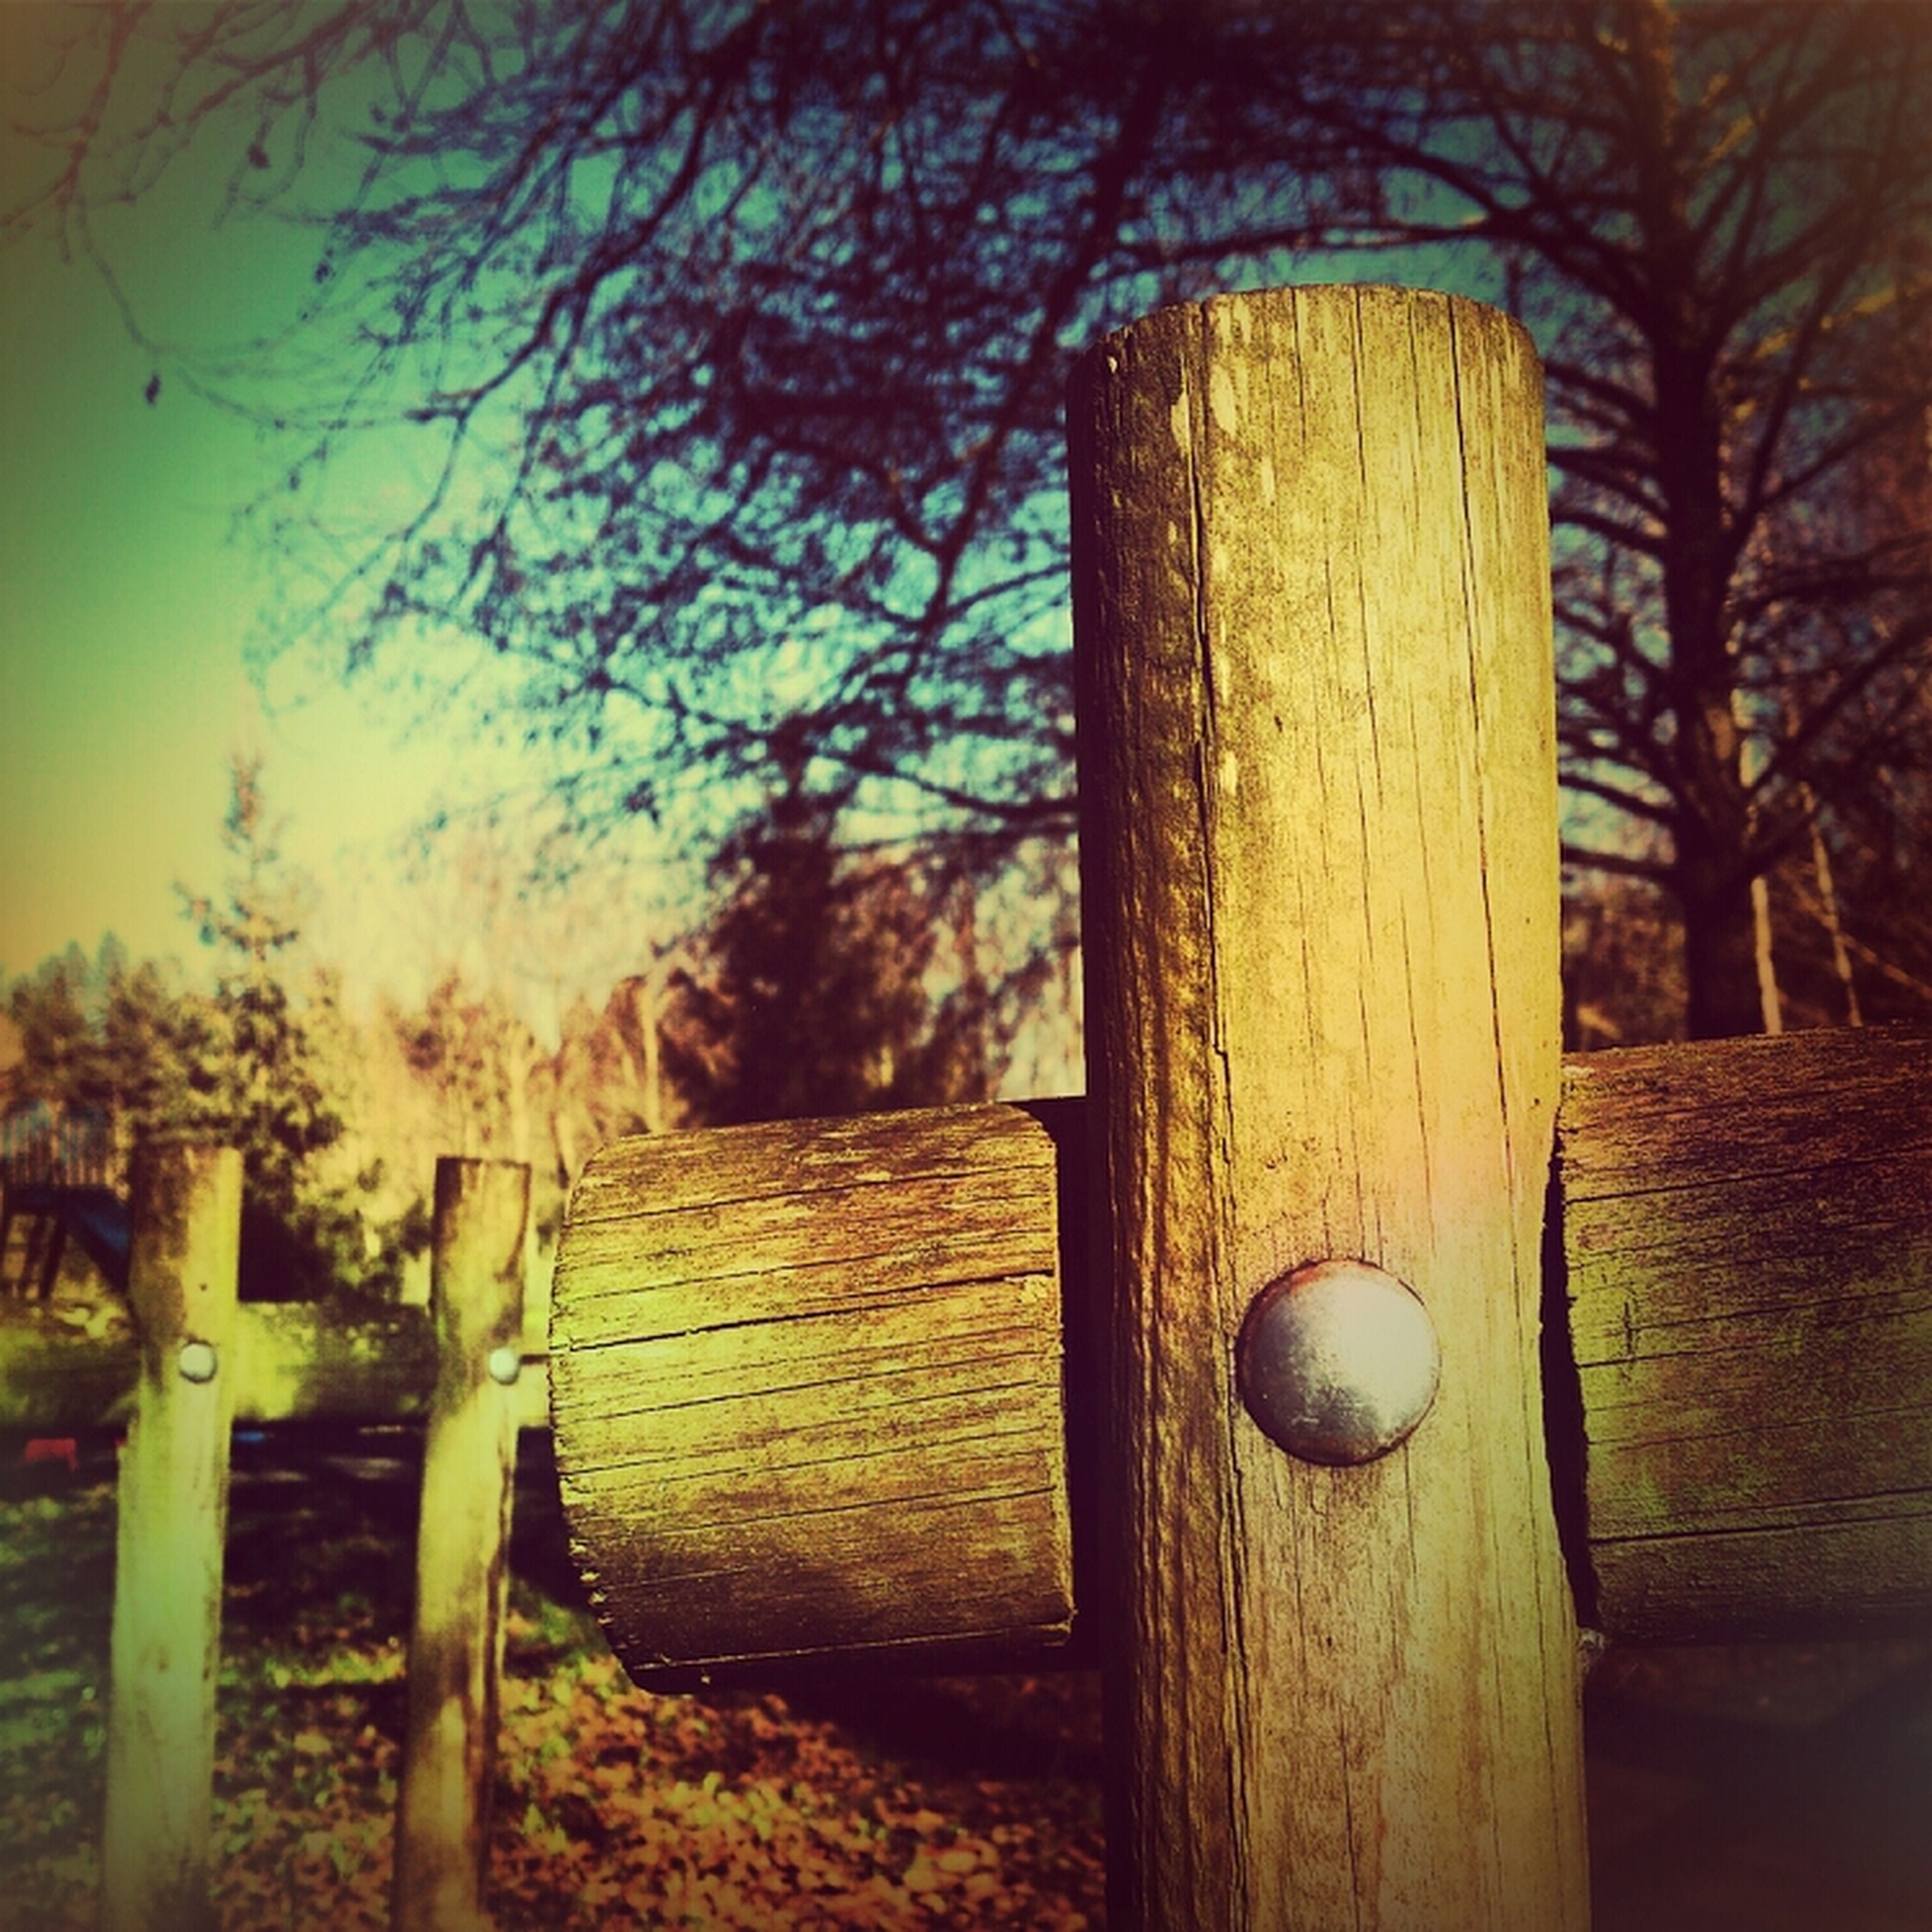 wood - material, tree, wooden, field, wood, no people, close-up, outdoors, tree trunk, growth, day, sunlight, tranquility, grass, nature, fence, focus on foreground, old, park - man made space, still life